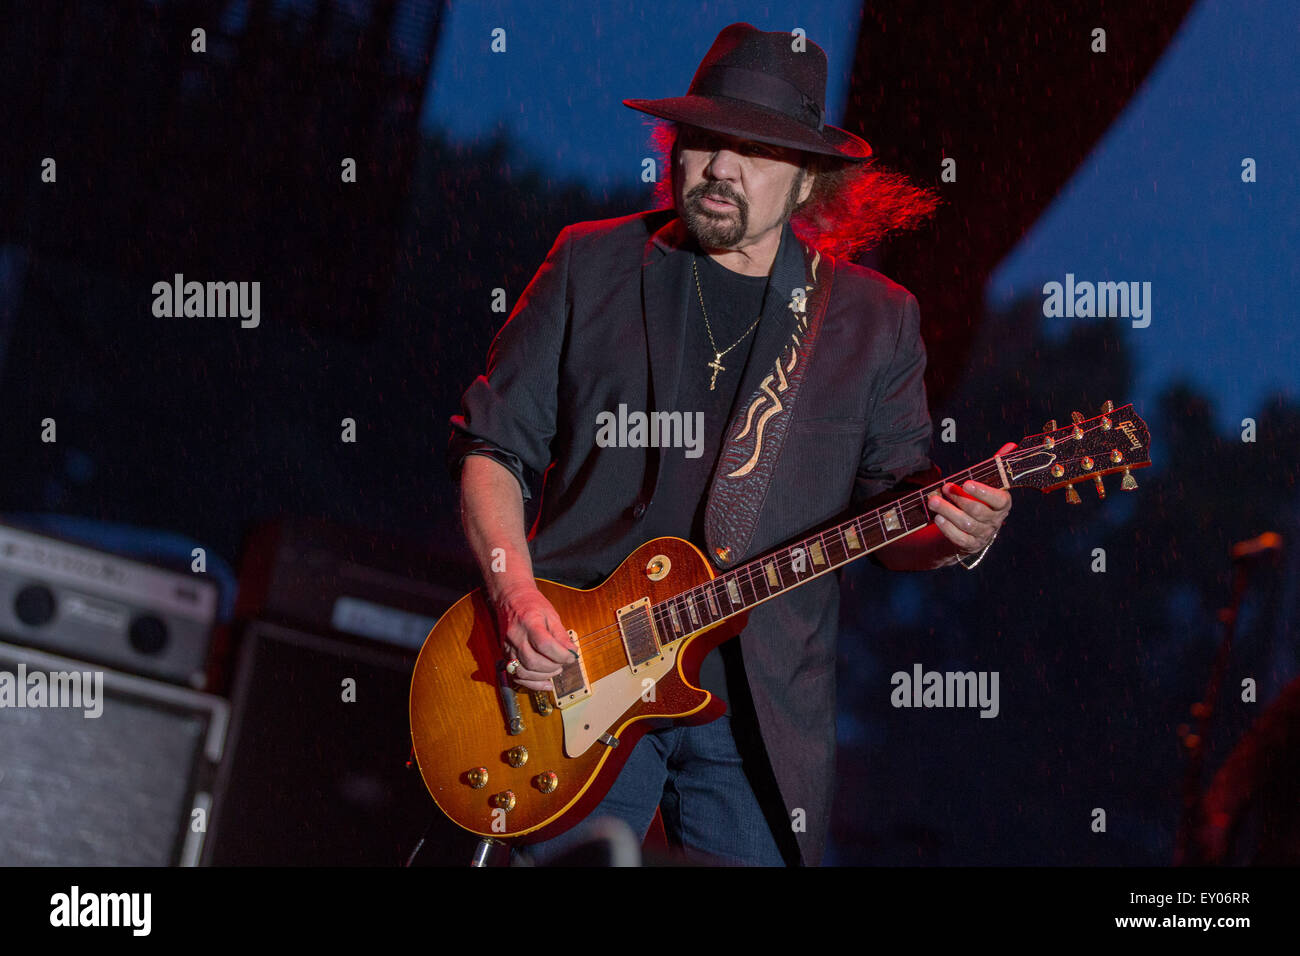 Oshkosh, Wisconsin, USA. 16th July, 2015. Guitarist GARY ROSSINGTON of Lynyrd Skynyrd performs live with his band Stock Photo